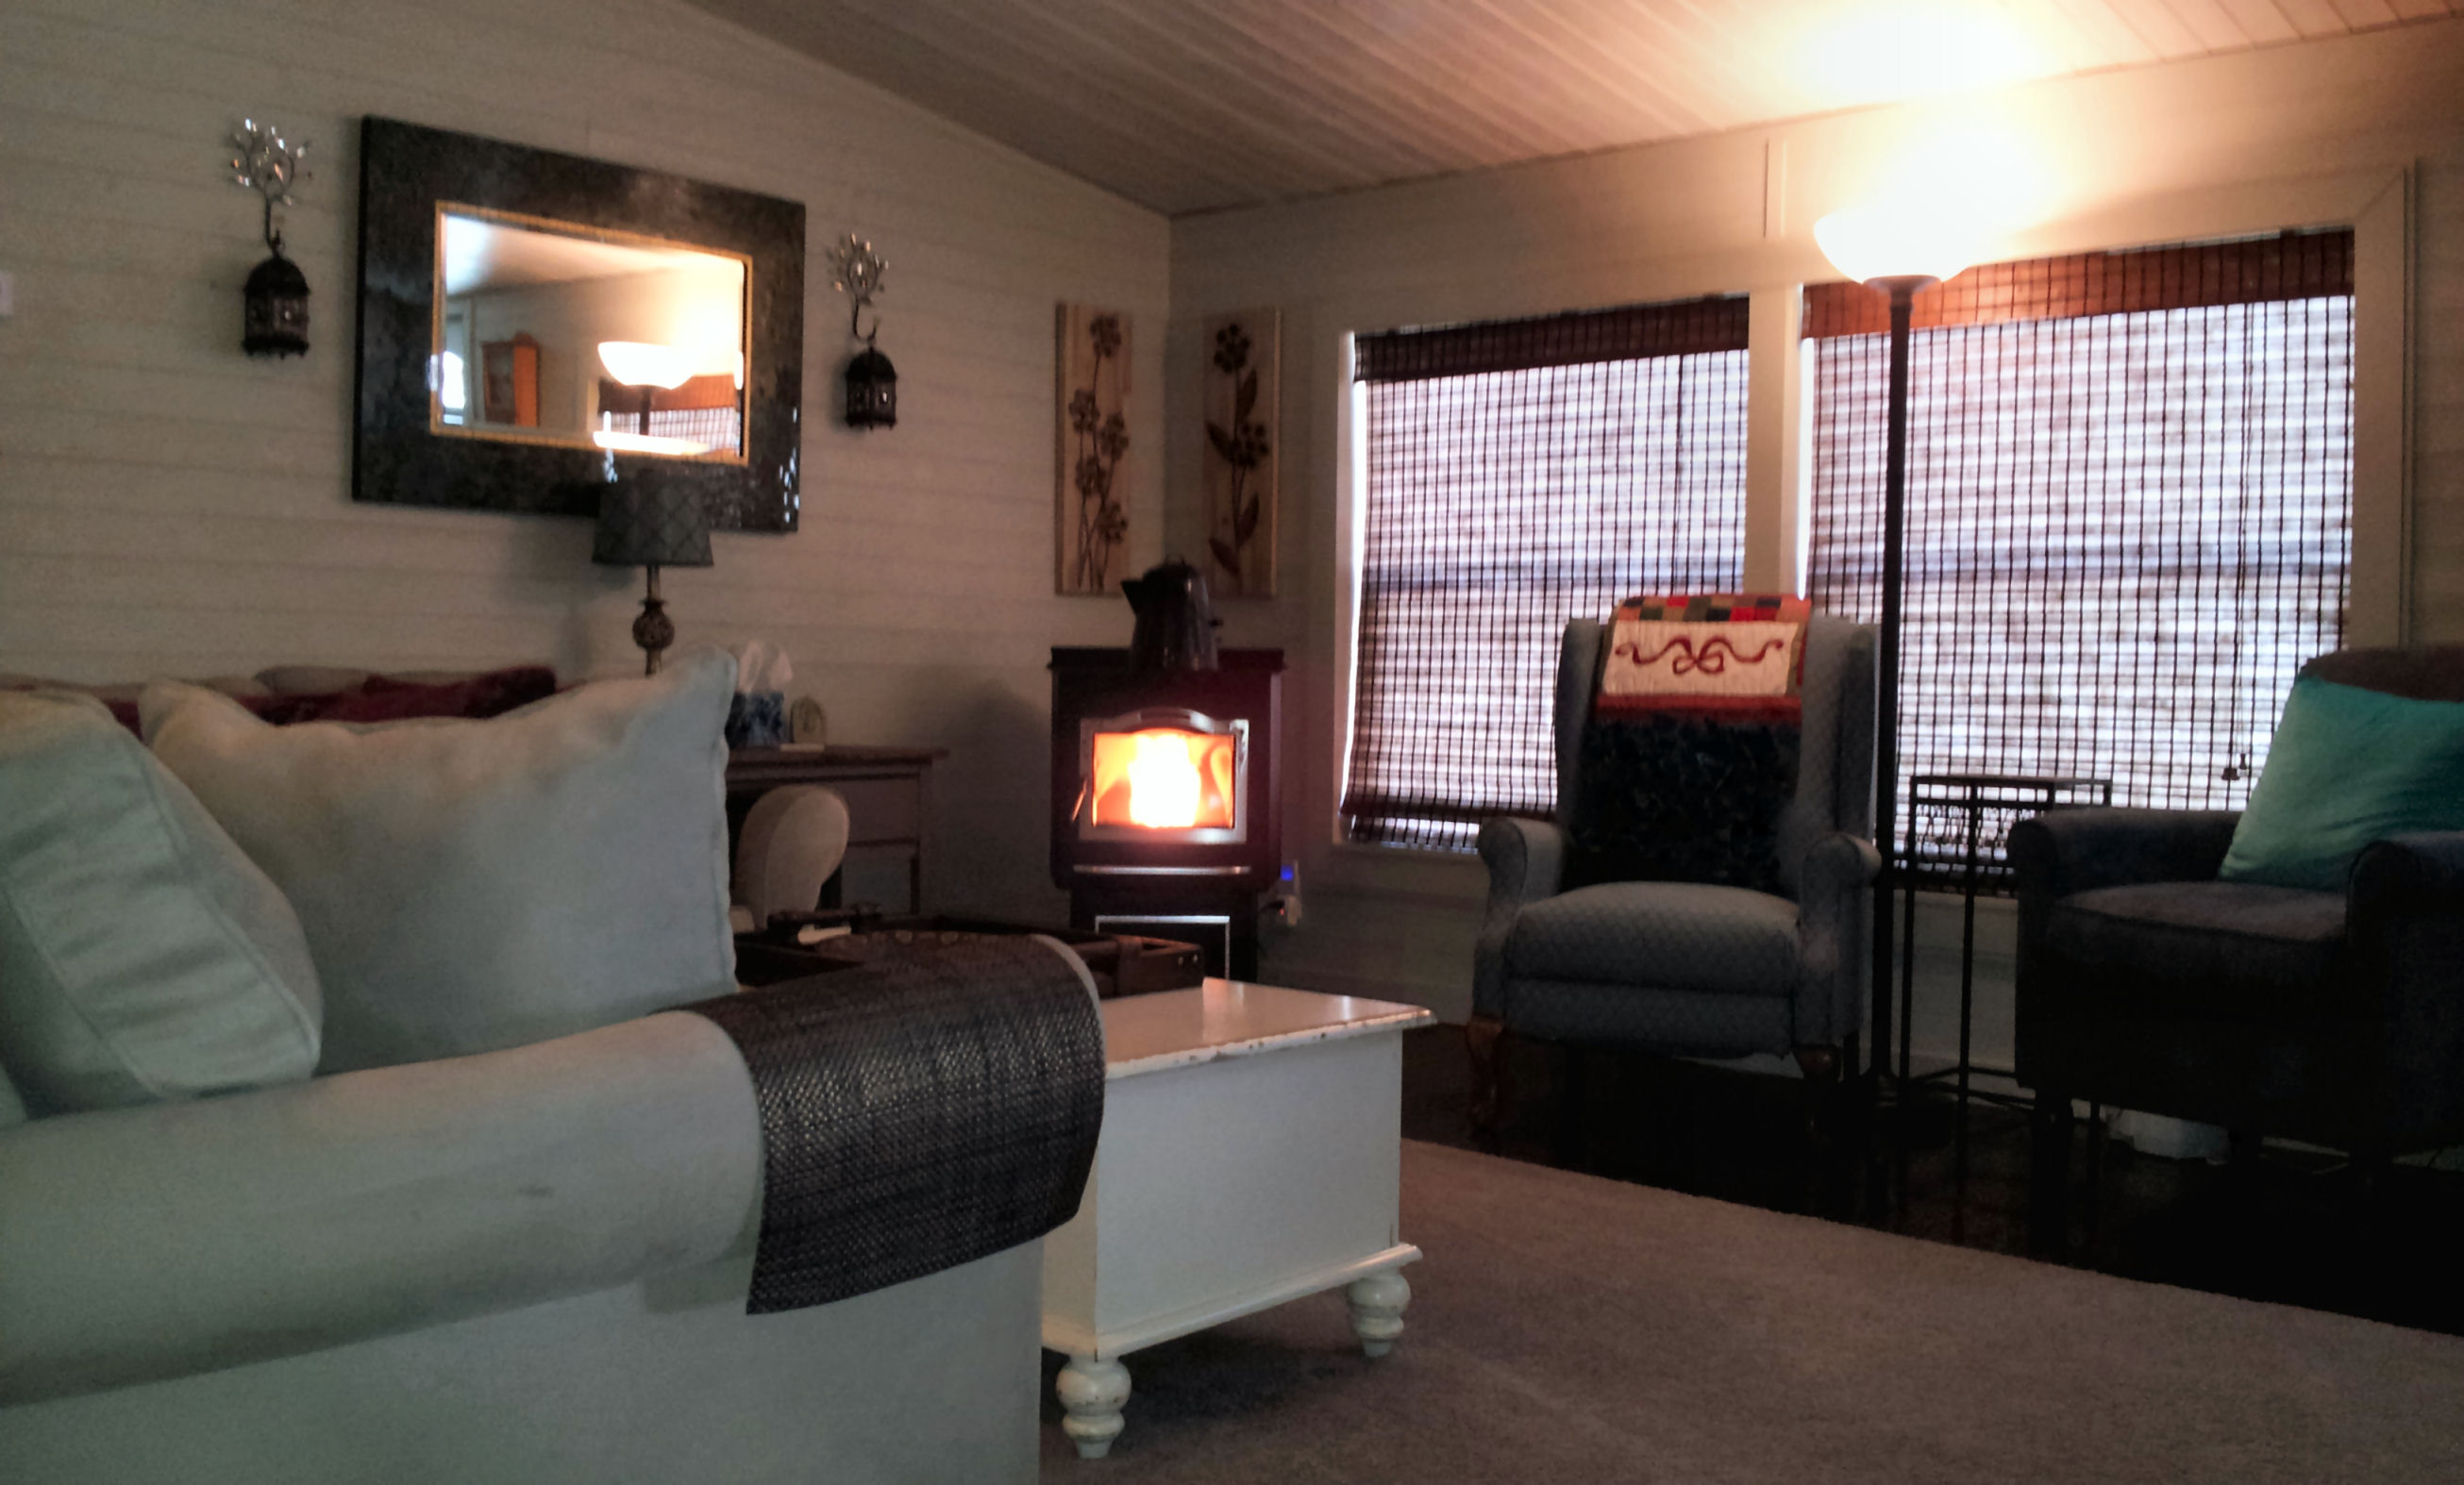 Mobile Home Living Room Decorating Ideas Part - 27: View Of Front With Lit Harman Pellet Stove